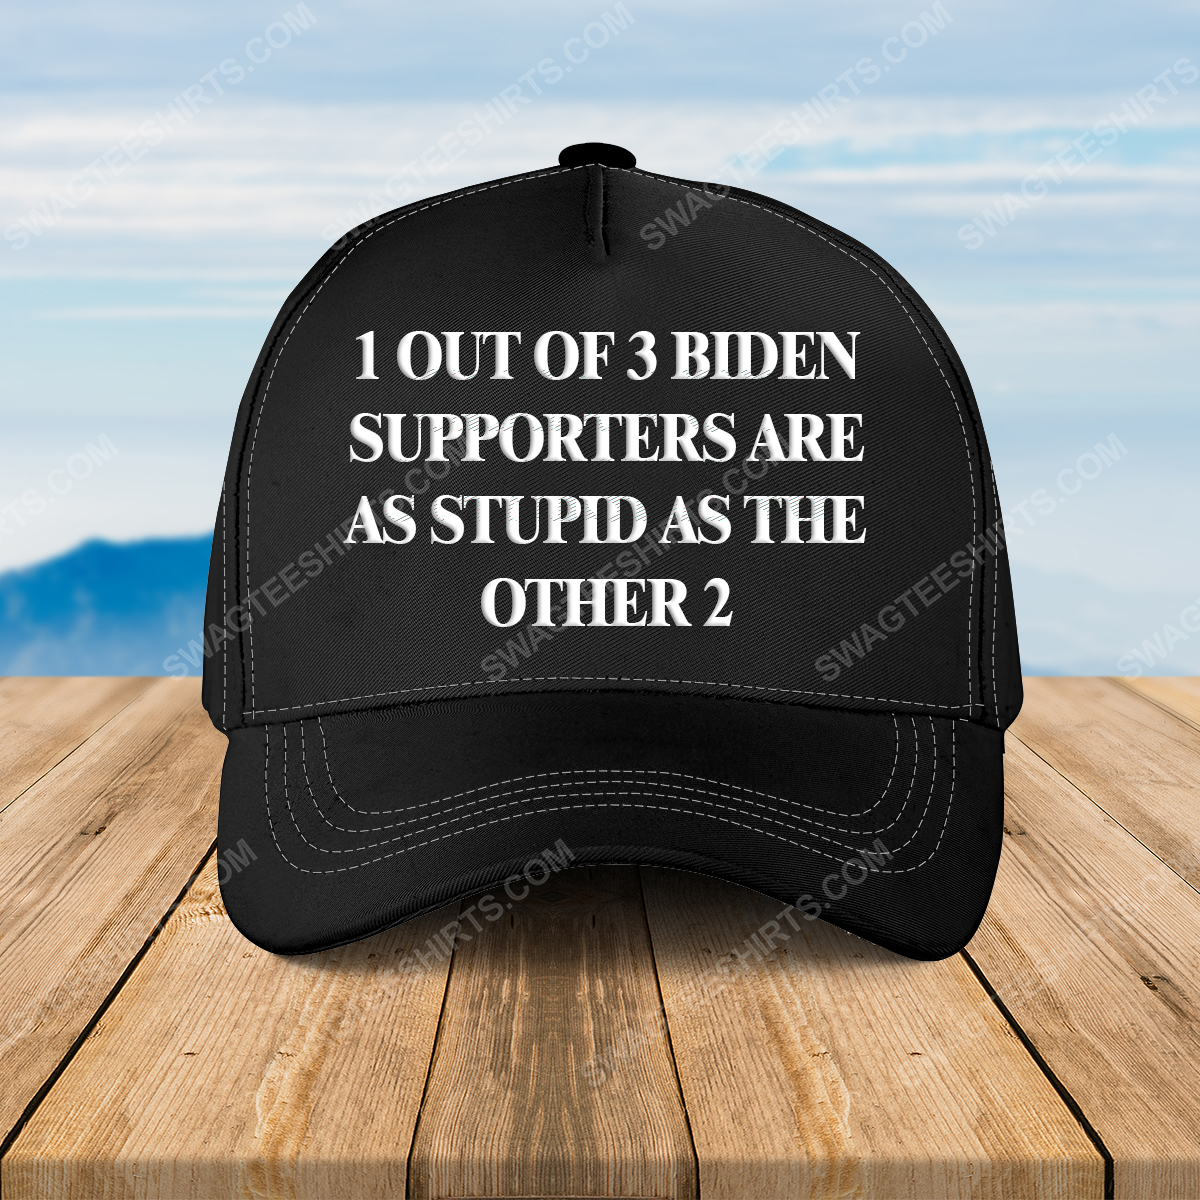 1 out of 3 biden supporters are as stupid as the other 2 full print classic hat 1 - Copy (3)